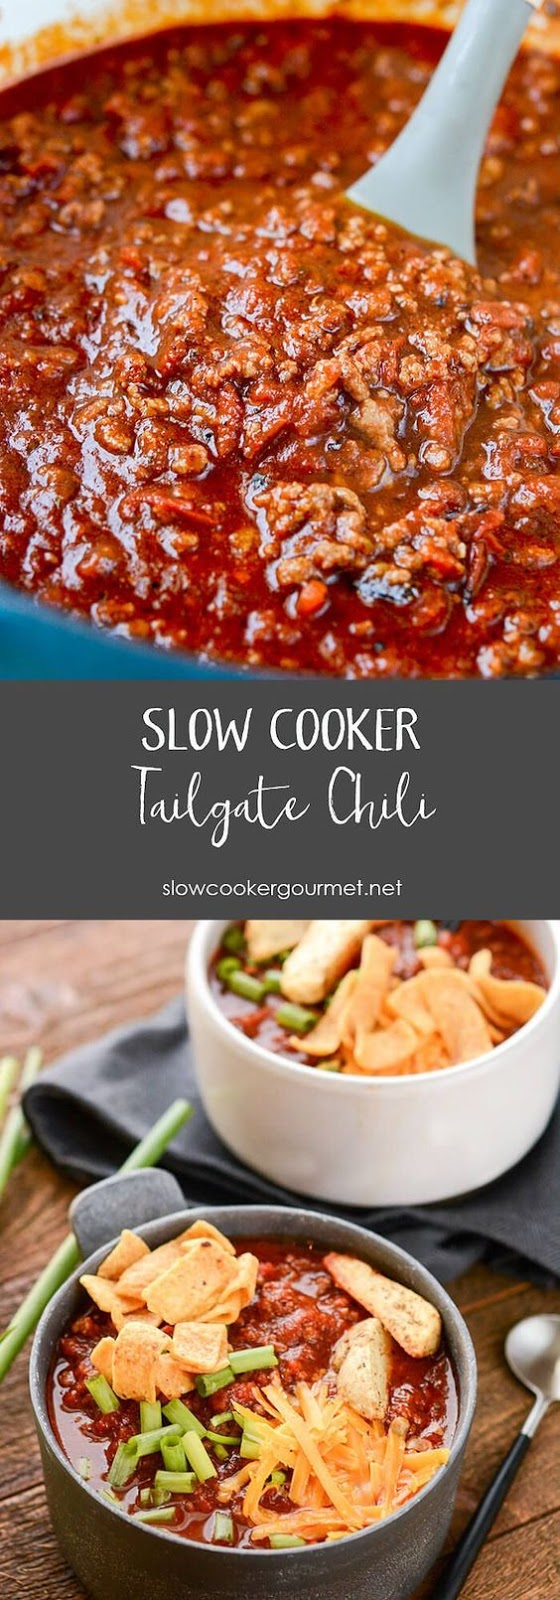 Slow Cooker Tailgate Chili #MAINCOURSE #AMERICAN #SLOWCOOKER